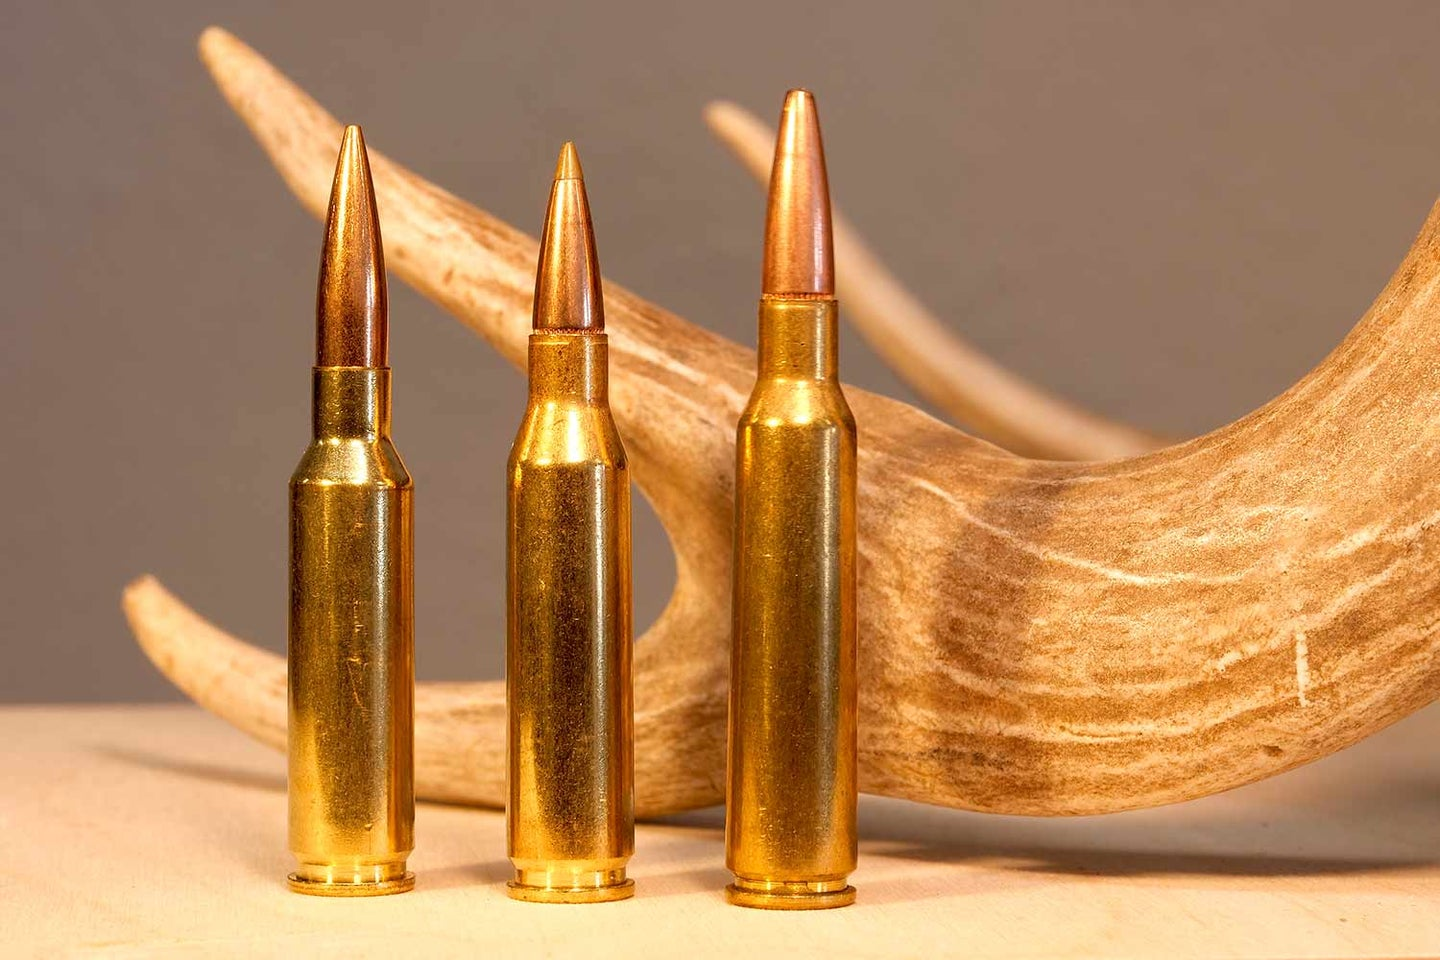 Three 6.5 ammo by an antler.